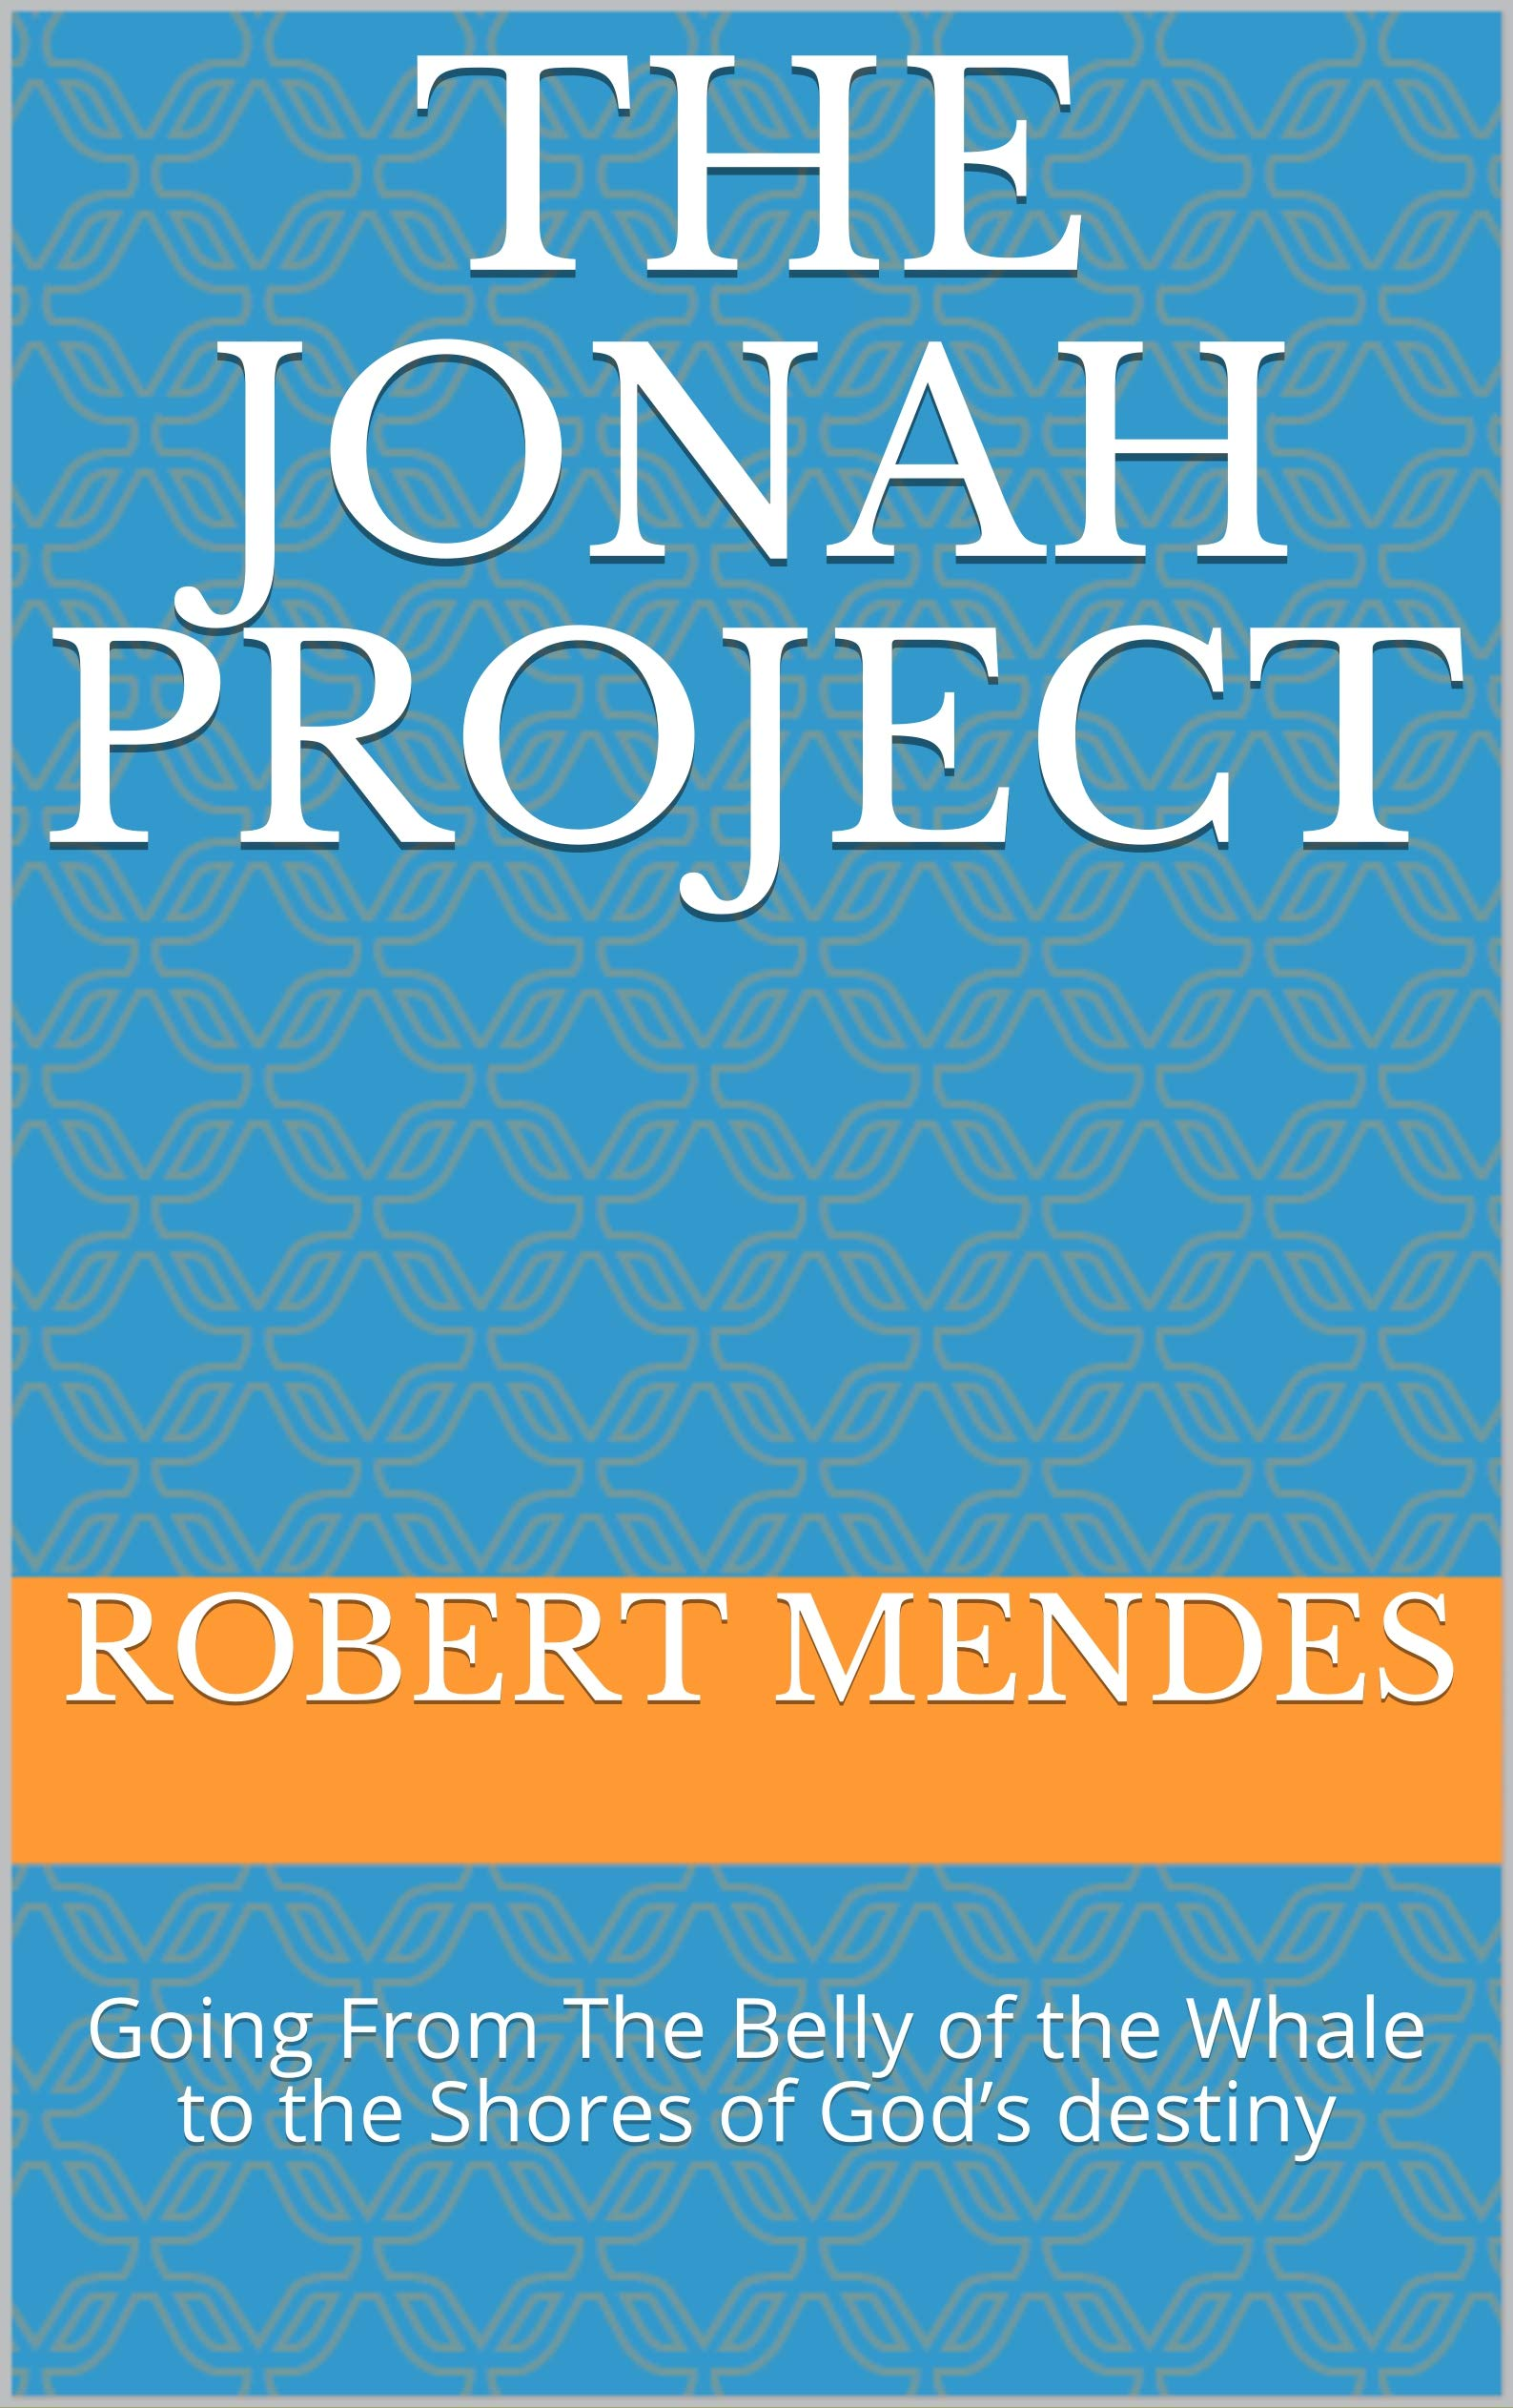 The Jonah Project: Going From The Belly of the Whale to the Shores of God's destiny